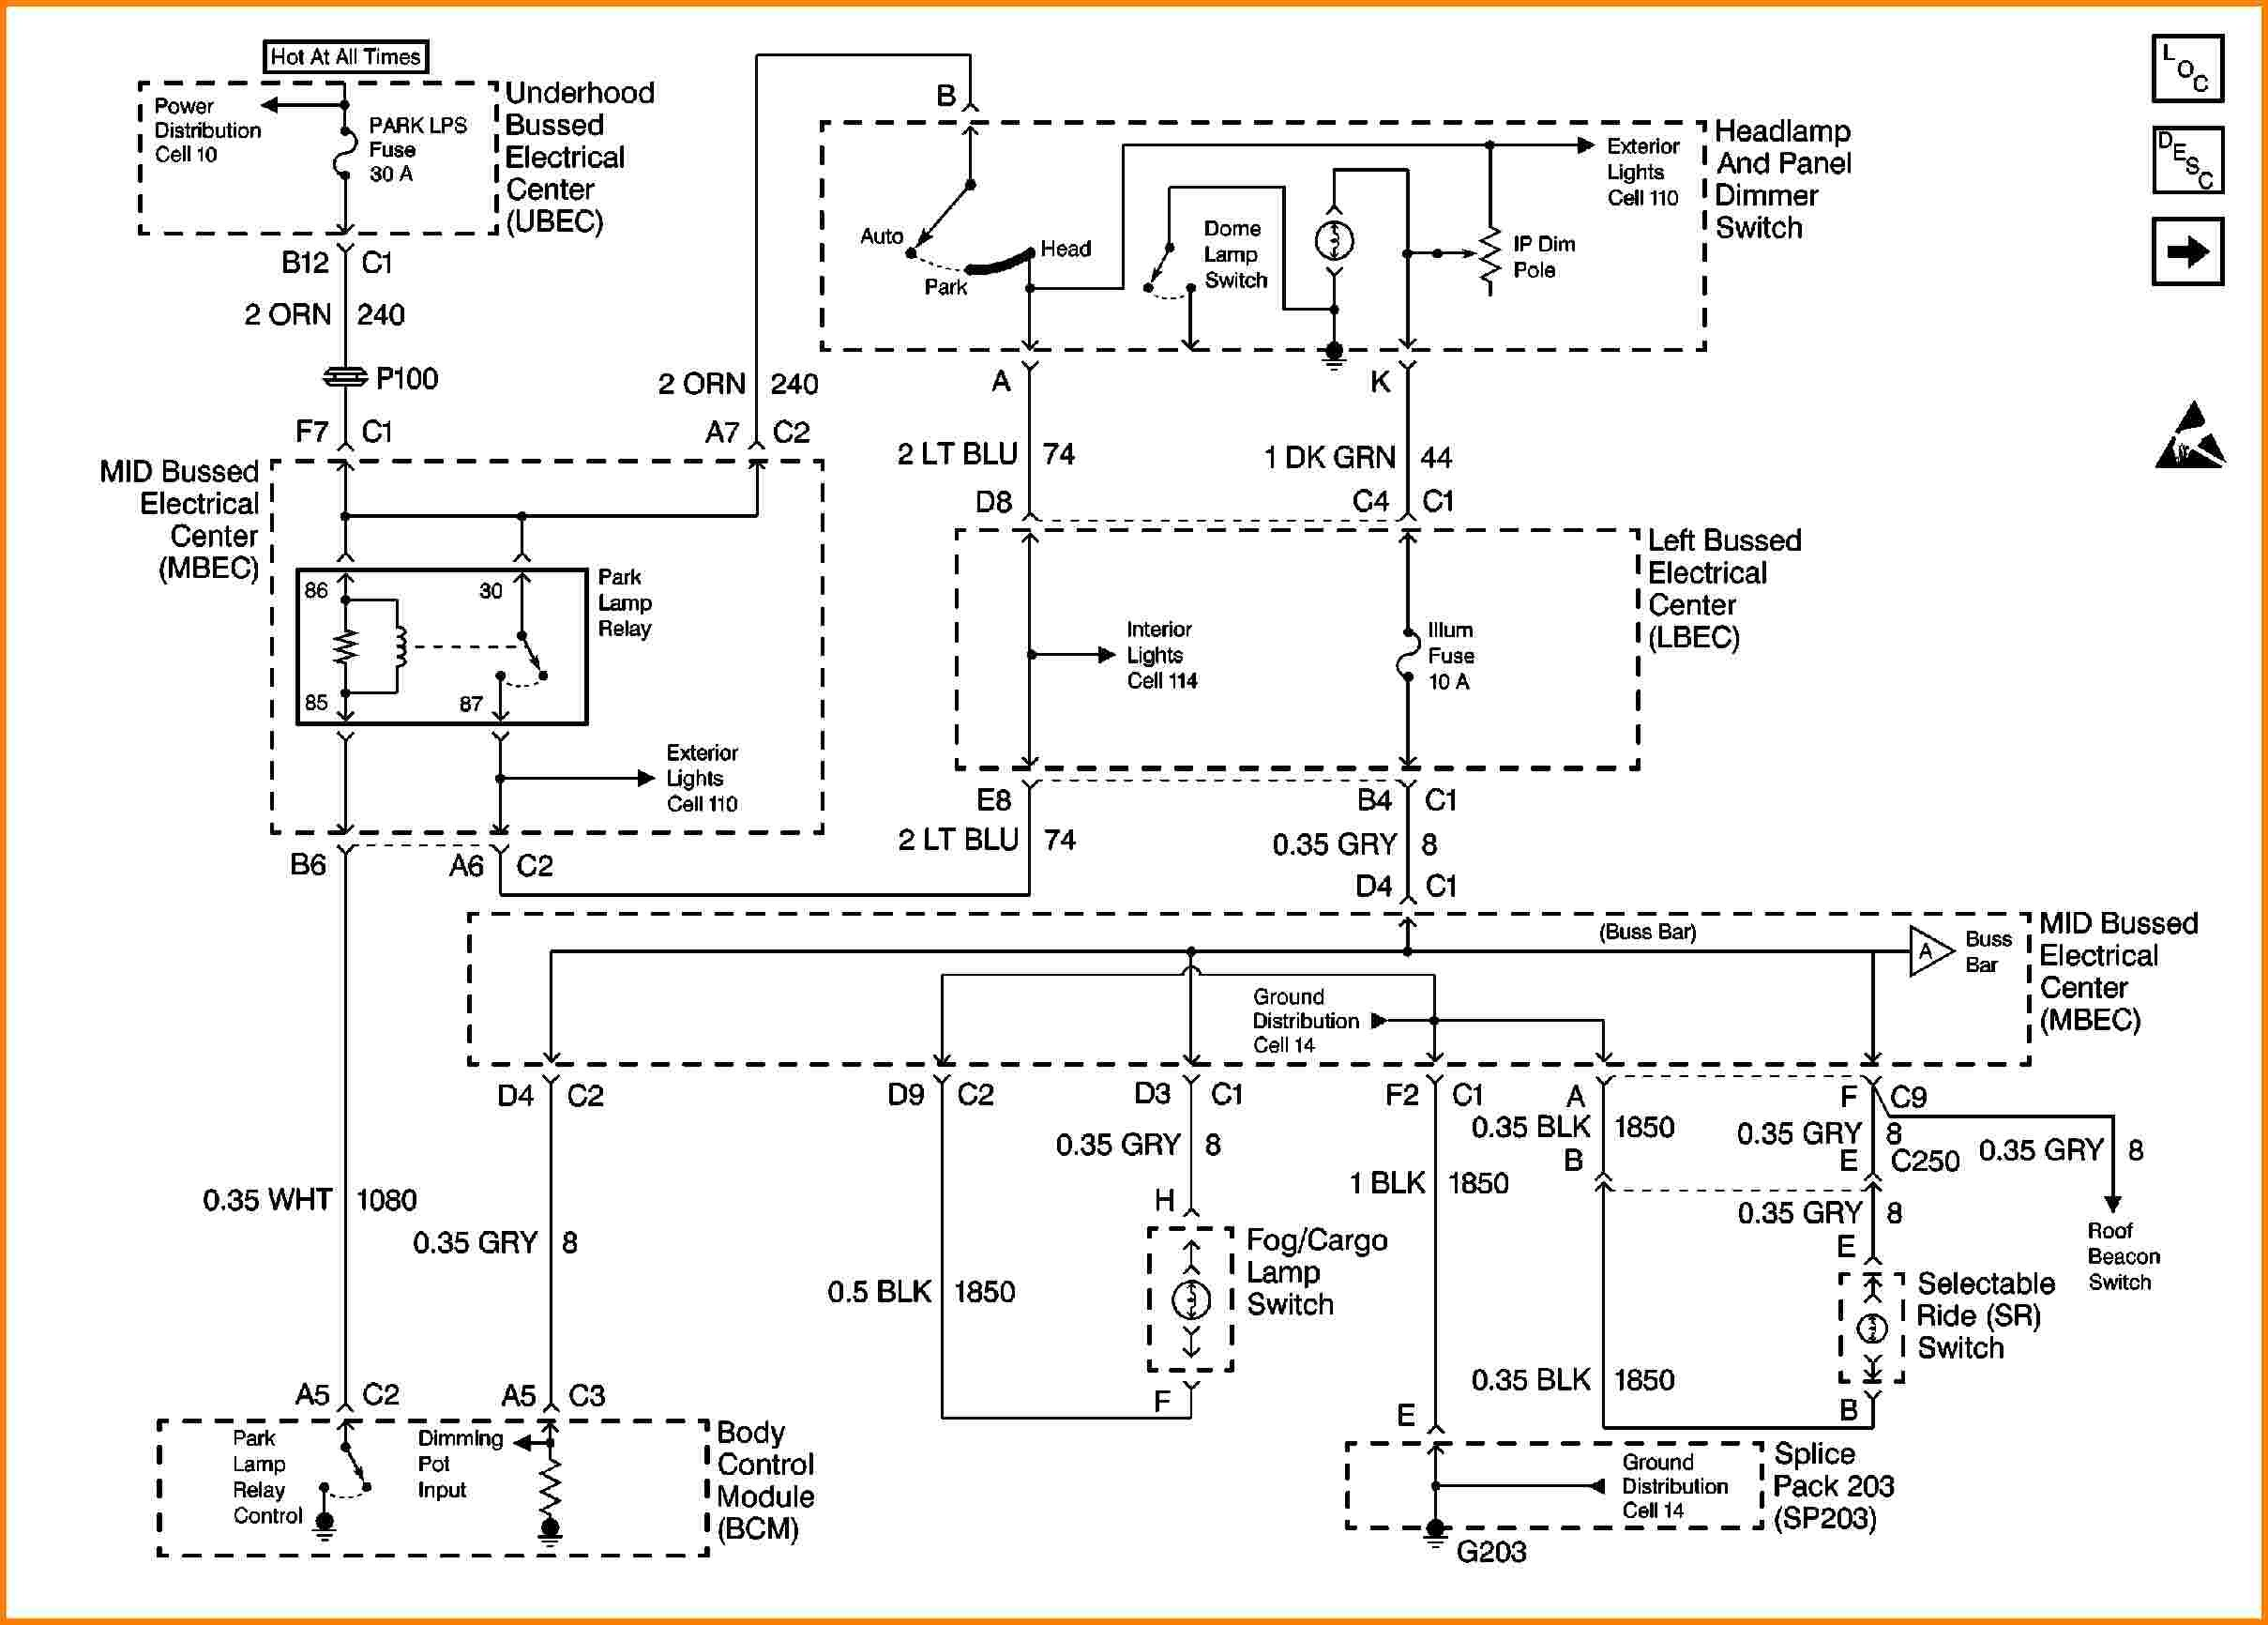 2003 chevy brake light wiring diagram - wiring diagram schema energy -  energy.atmosphereconcept.it  atmosphere